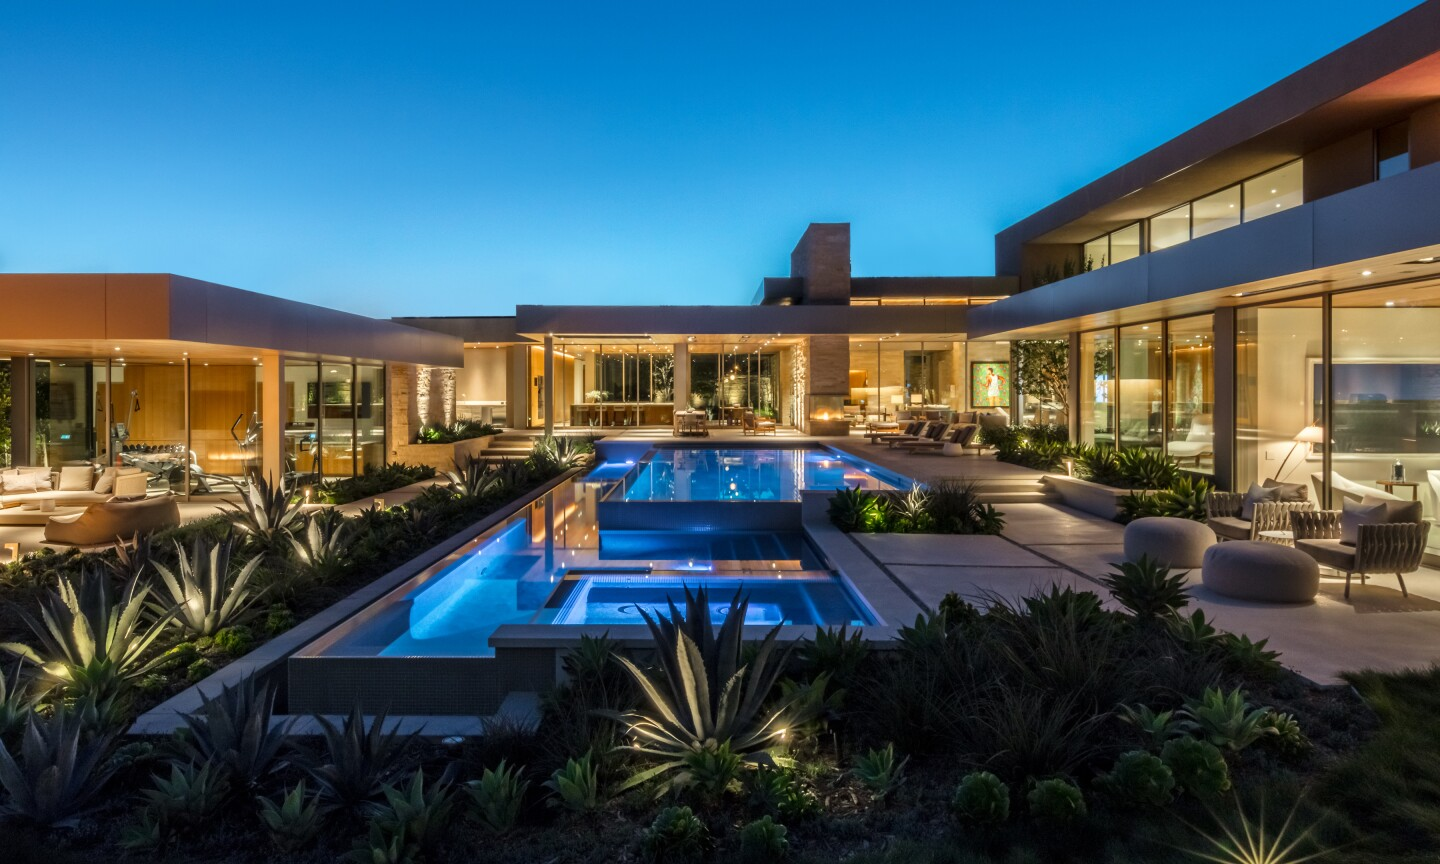 The one-acre estate includes a brand new home, a climate-controlled auto gallery and a gym and spa facility.